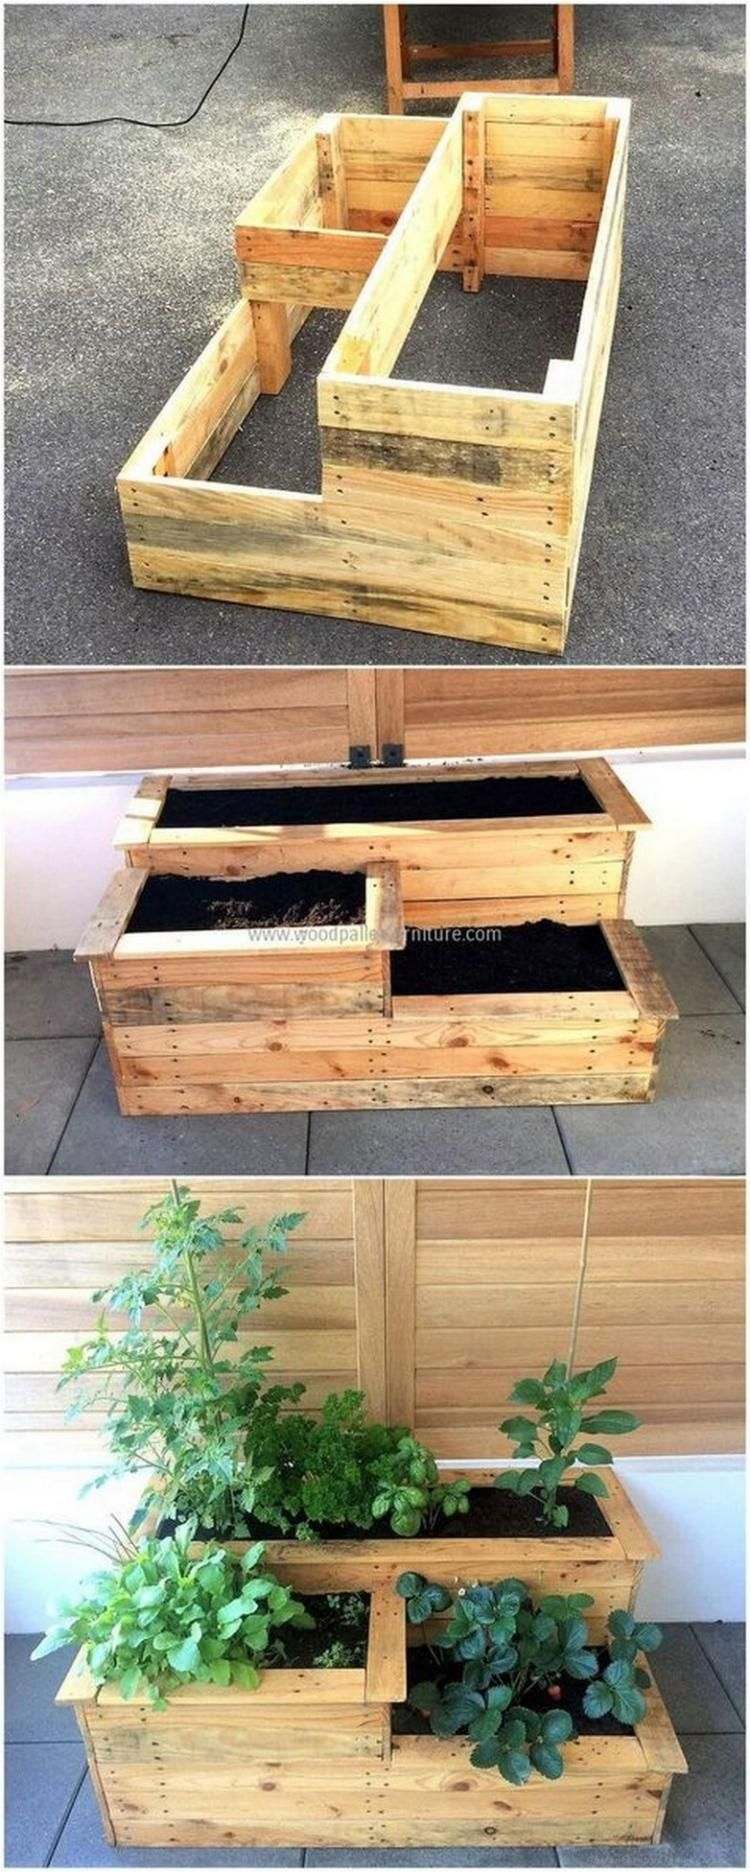 pallet furniture for sale. 20 Brilliant Craft Projects To Make And Sell Pallet Furniture For Sale A